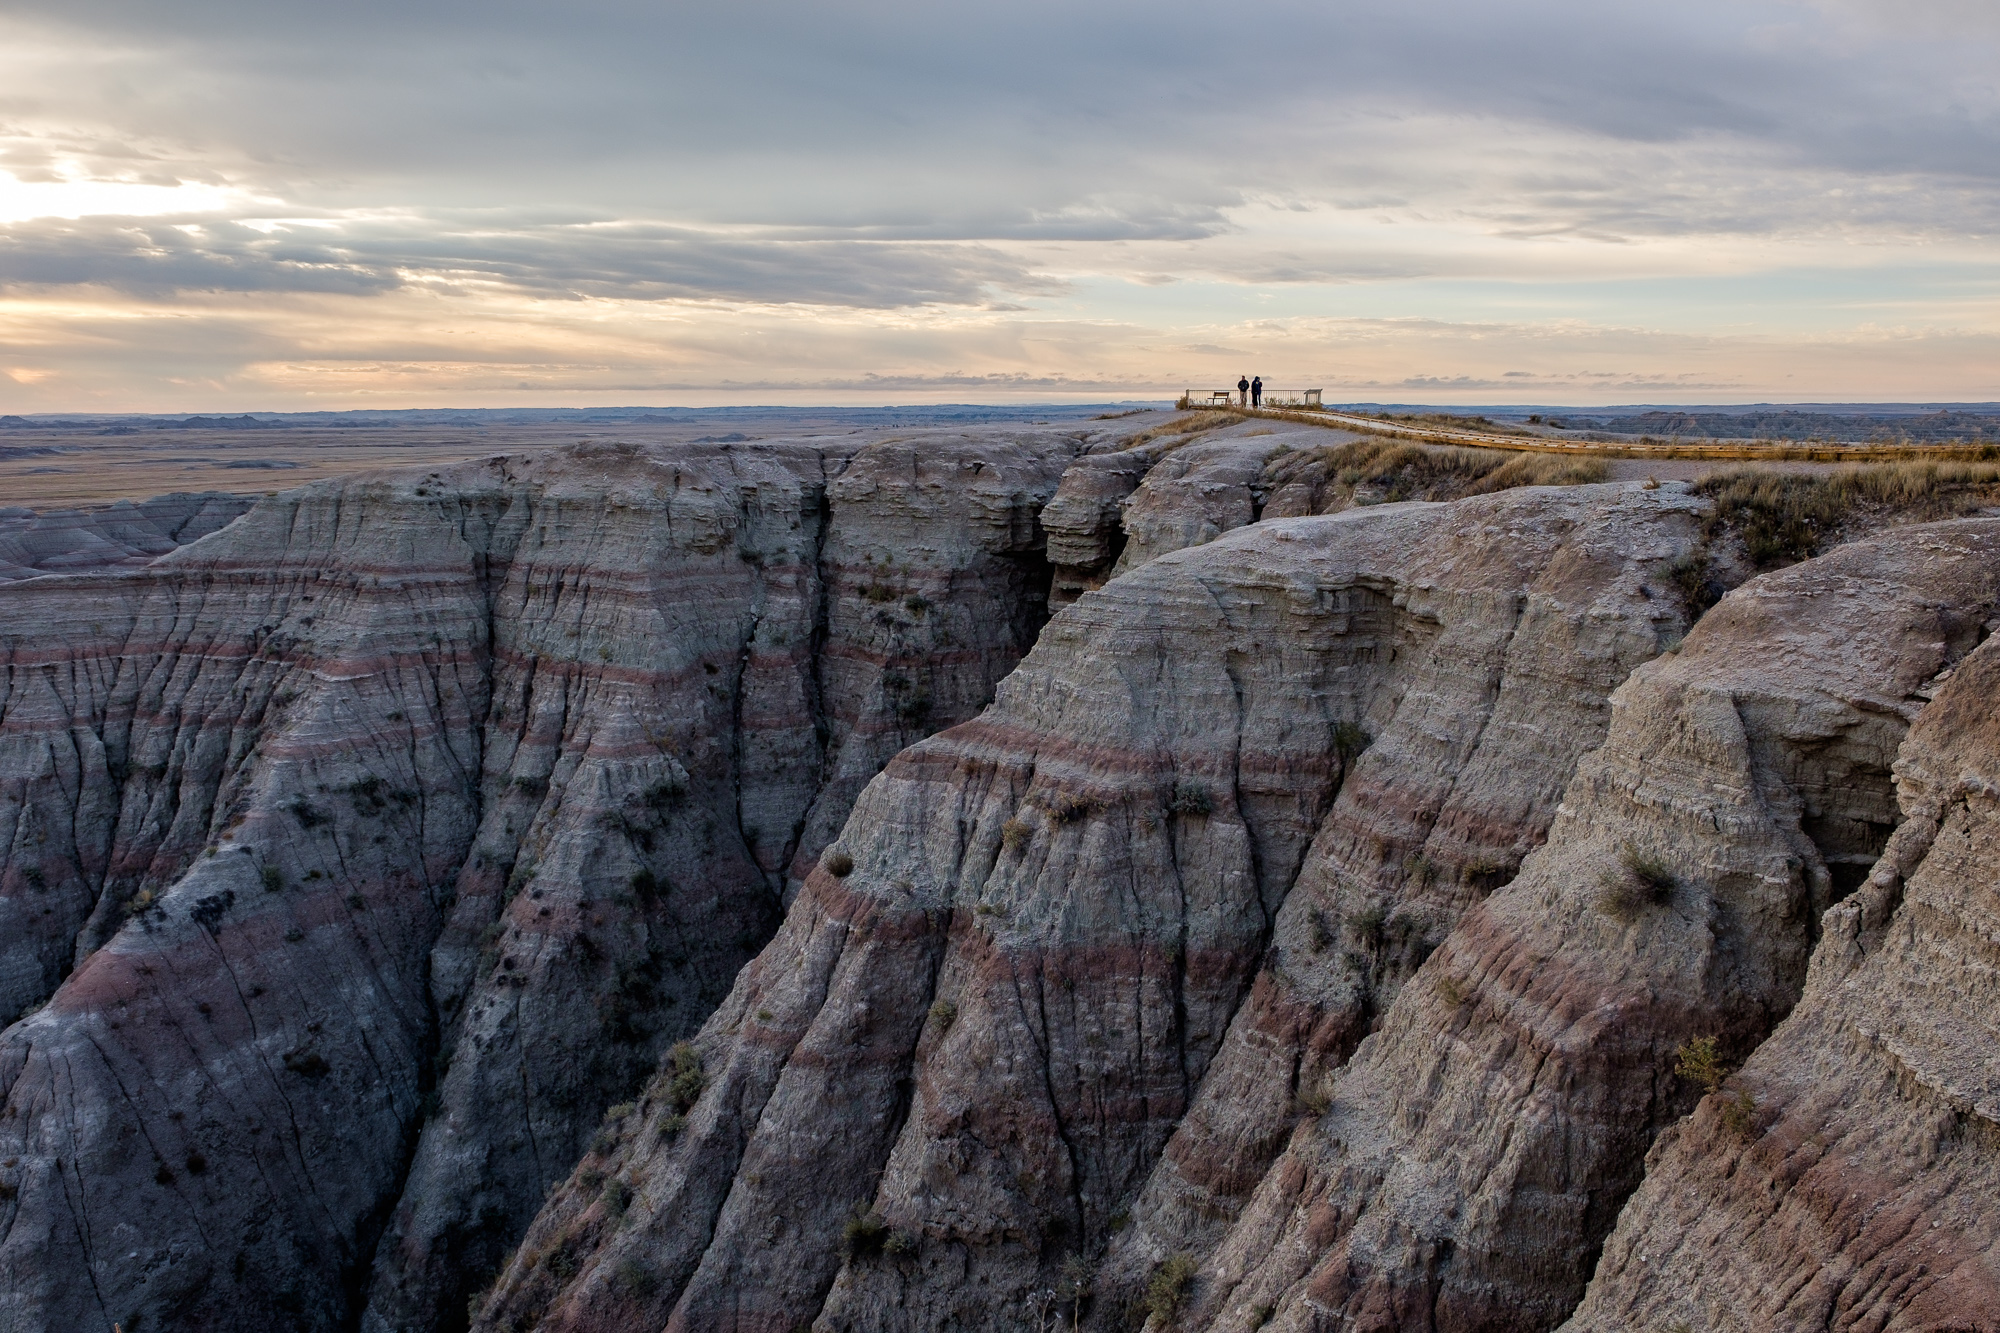 The viewpoint at Big Badlands Overlook.